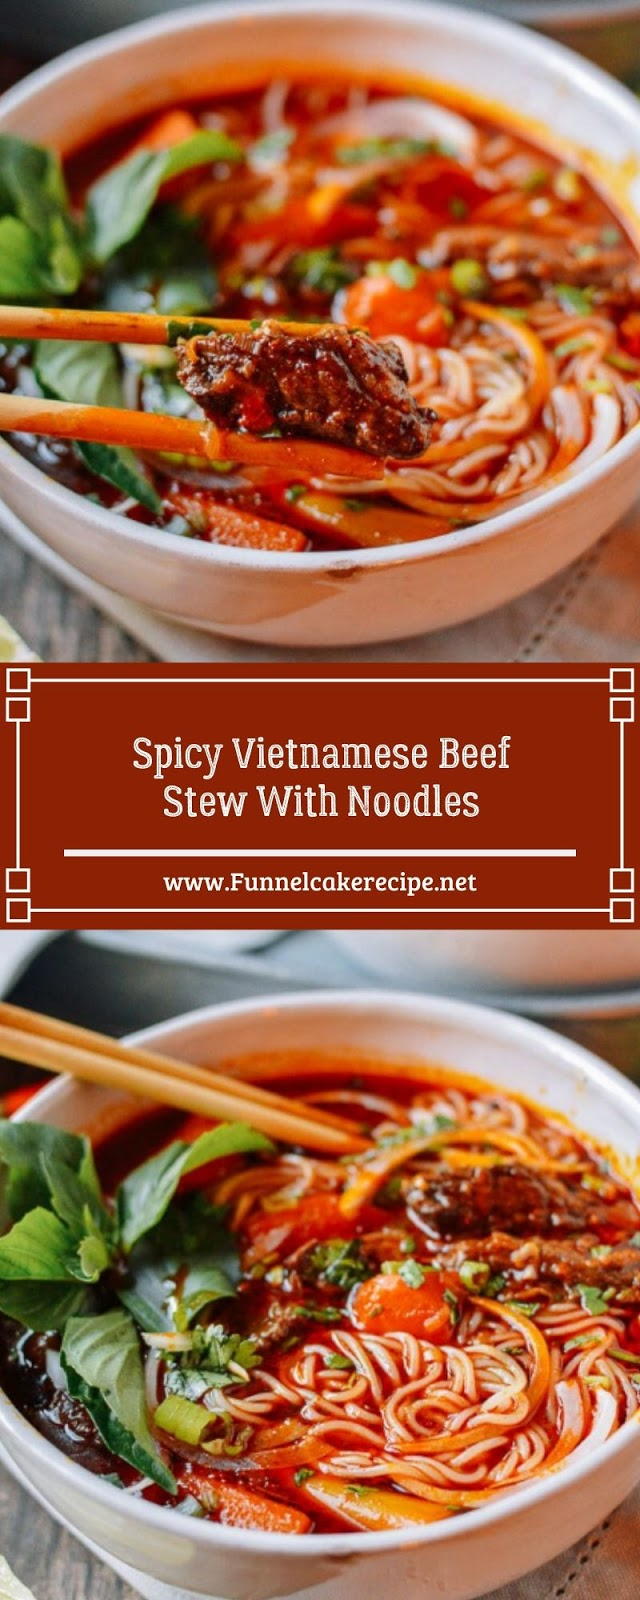 Spicy Vietnamese Beef Stew With Noodles